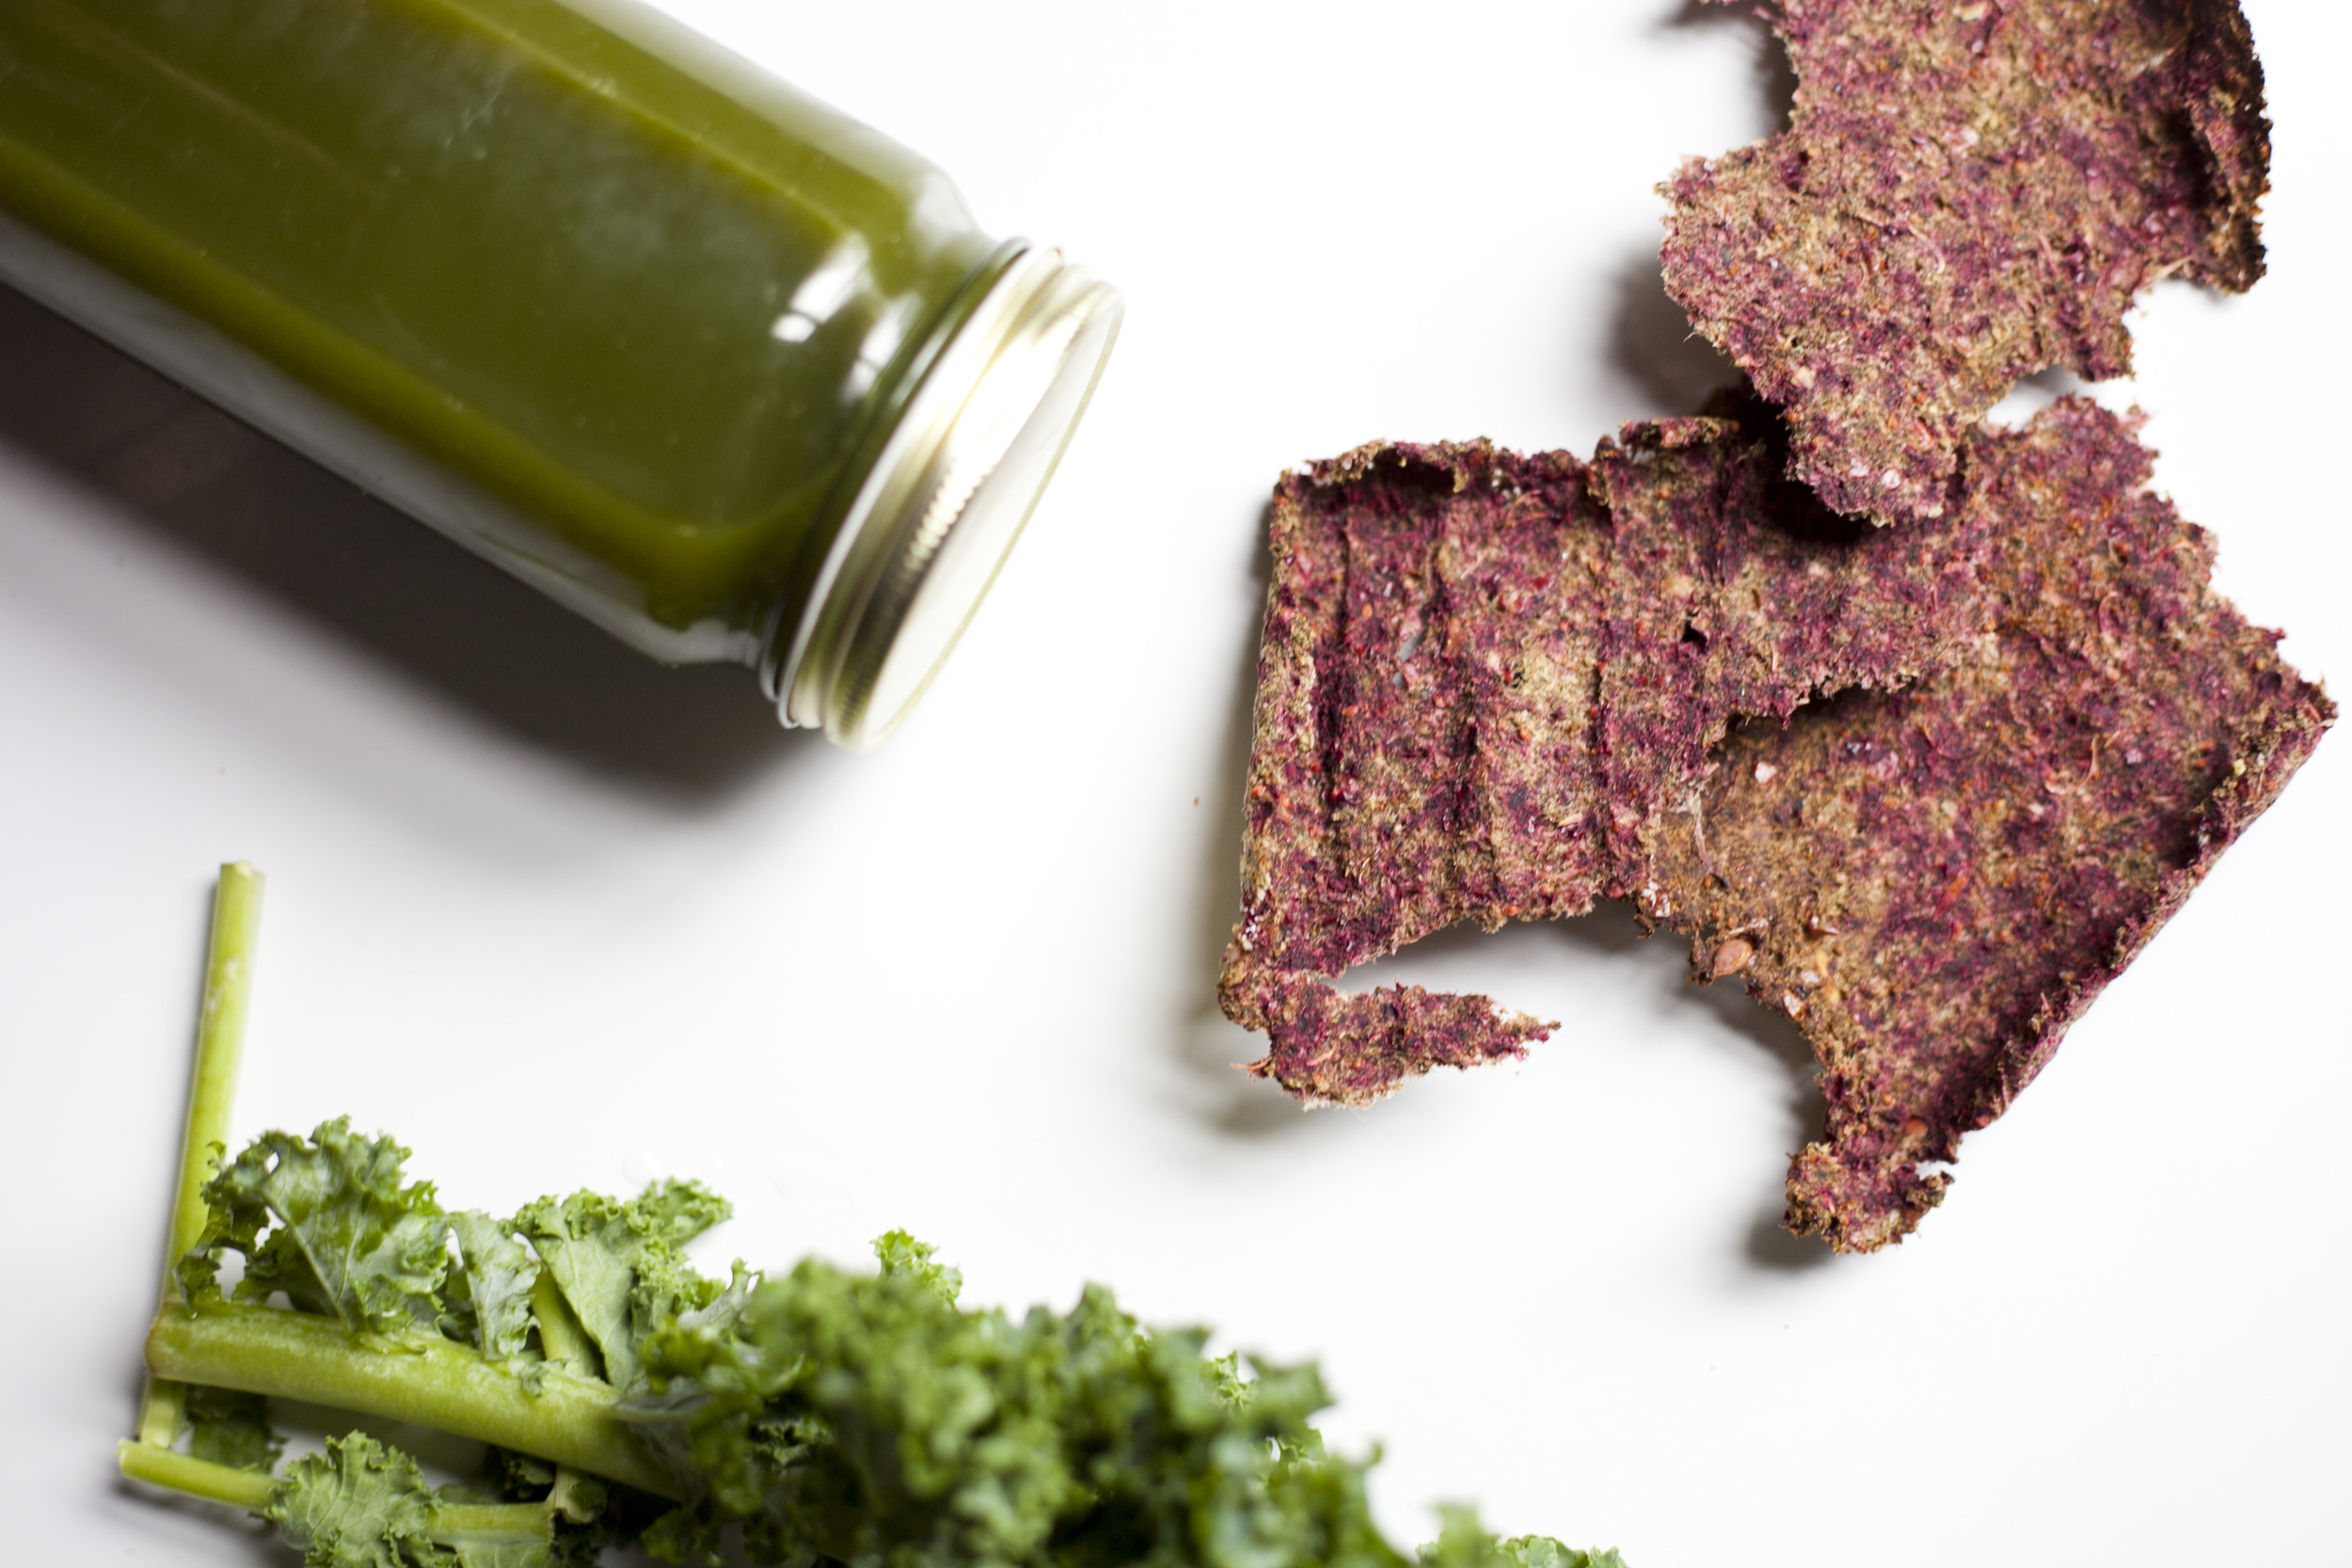 Waste Free Kitchen: Zero Fat Vegetable Juicing Pulp Crackers